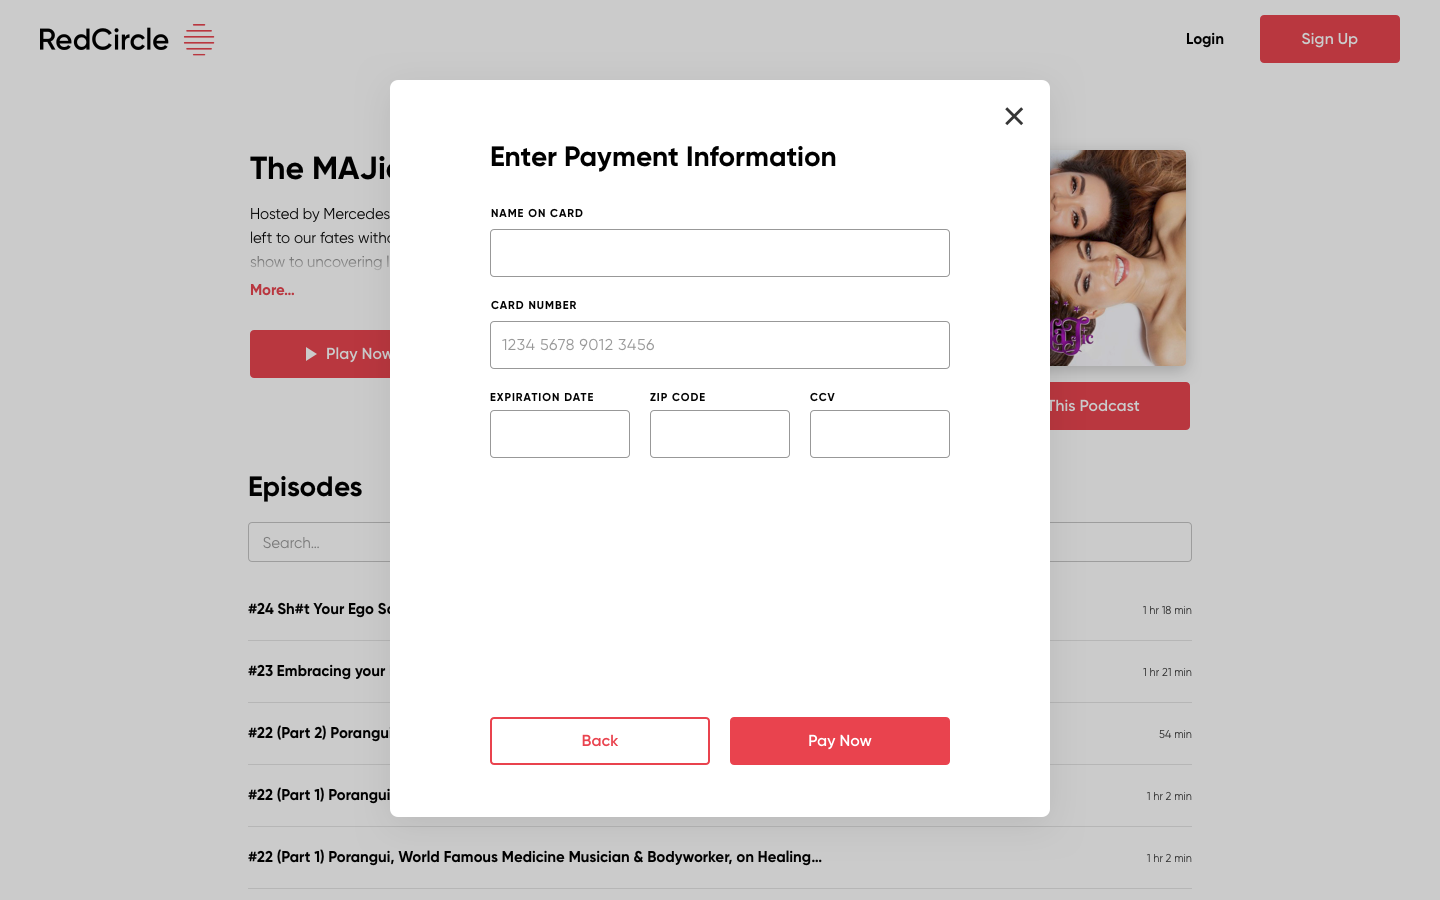 Payment information modal